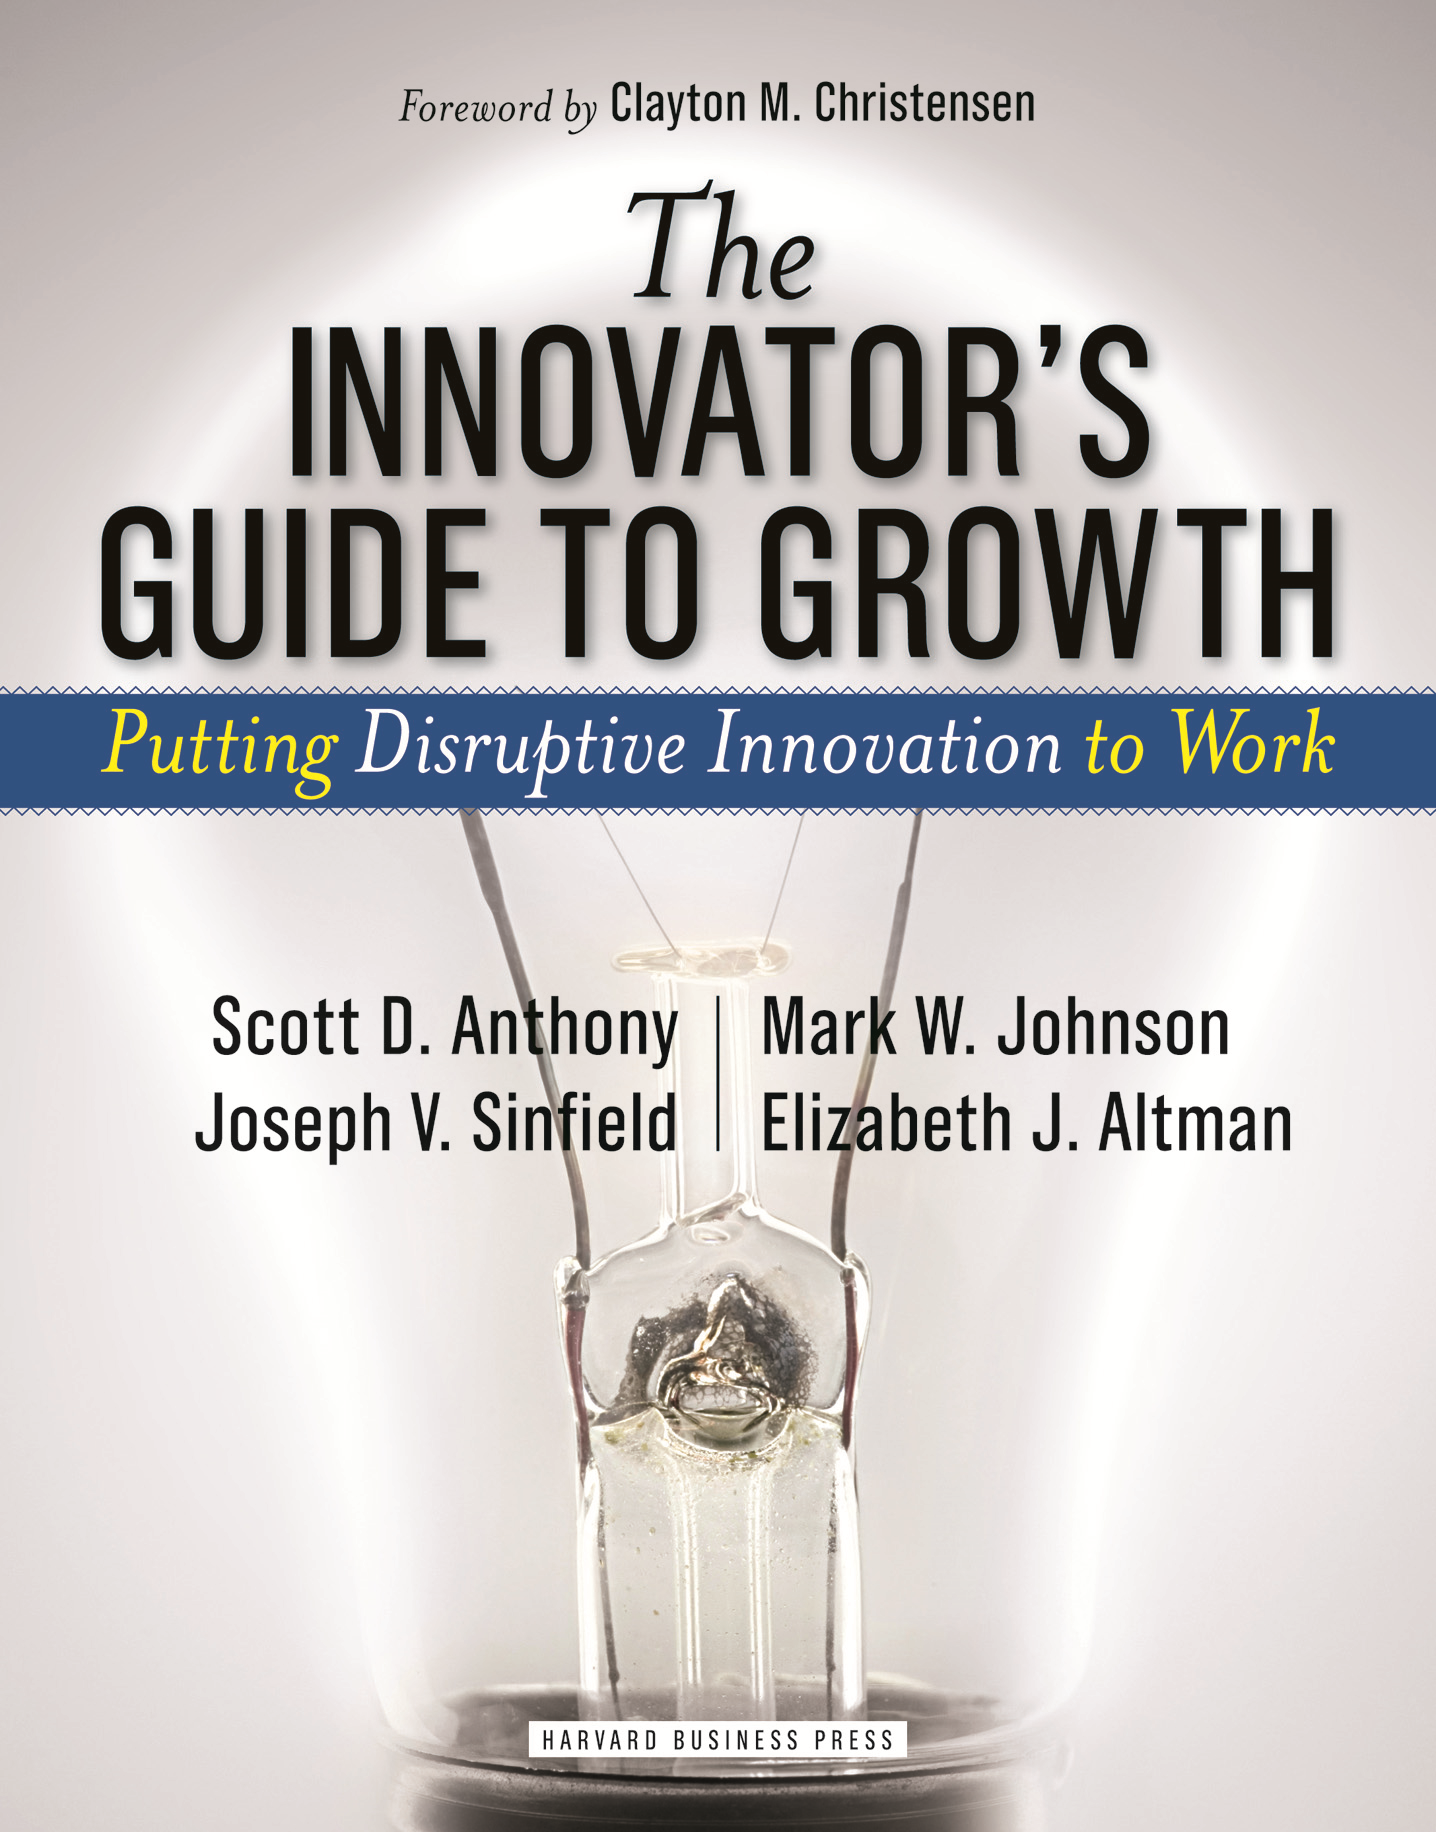 The Innovator's Guide to Growth By: Elizabeth J. Altman,Joseph V. Sinfield,Mark W. Johnson,Scott D. Anthony